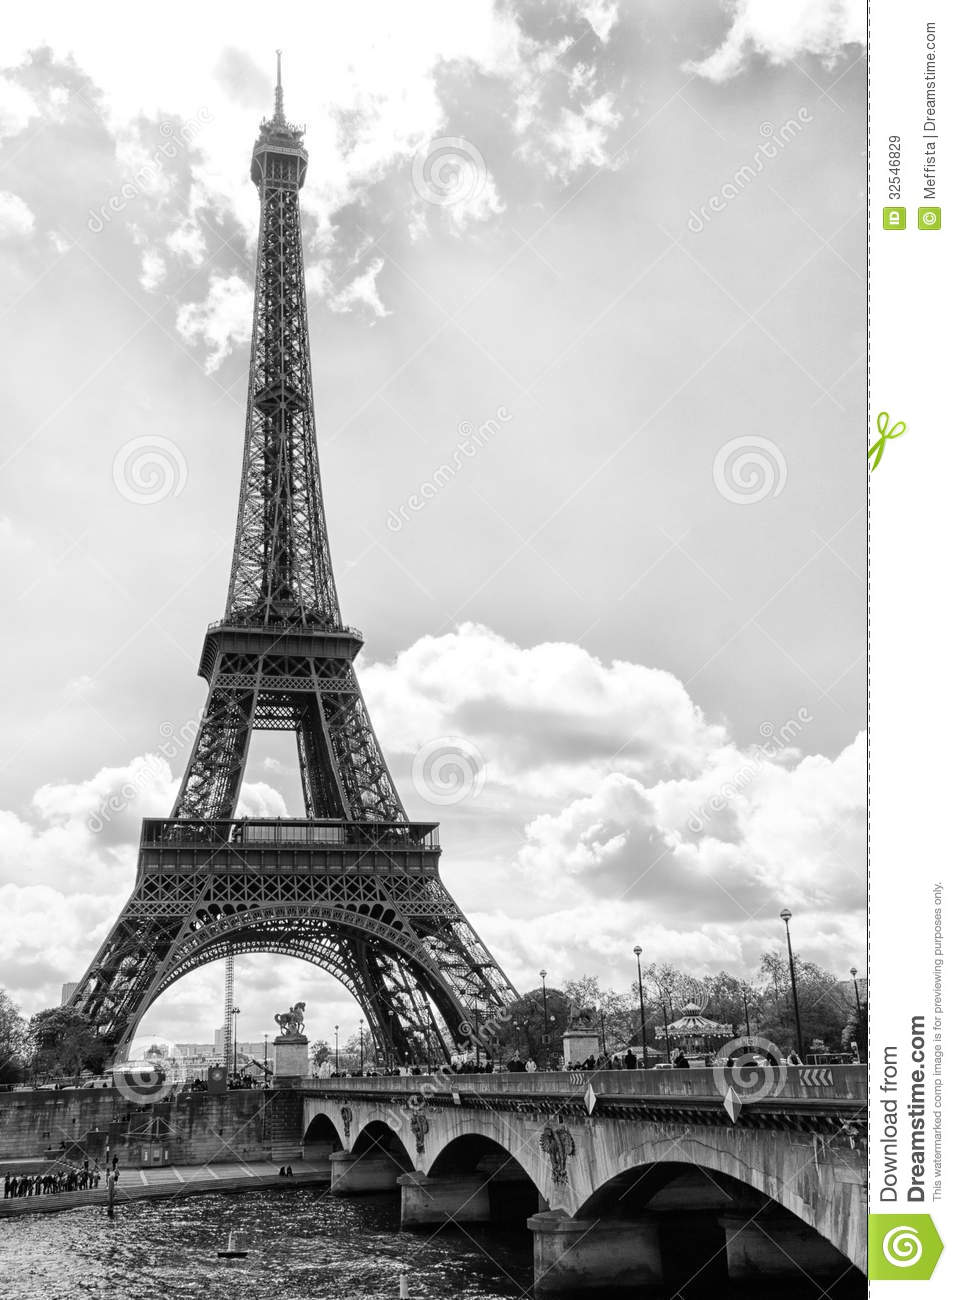 Eiffel Tower stock image. Image of french, arch, place ...